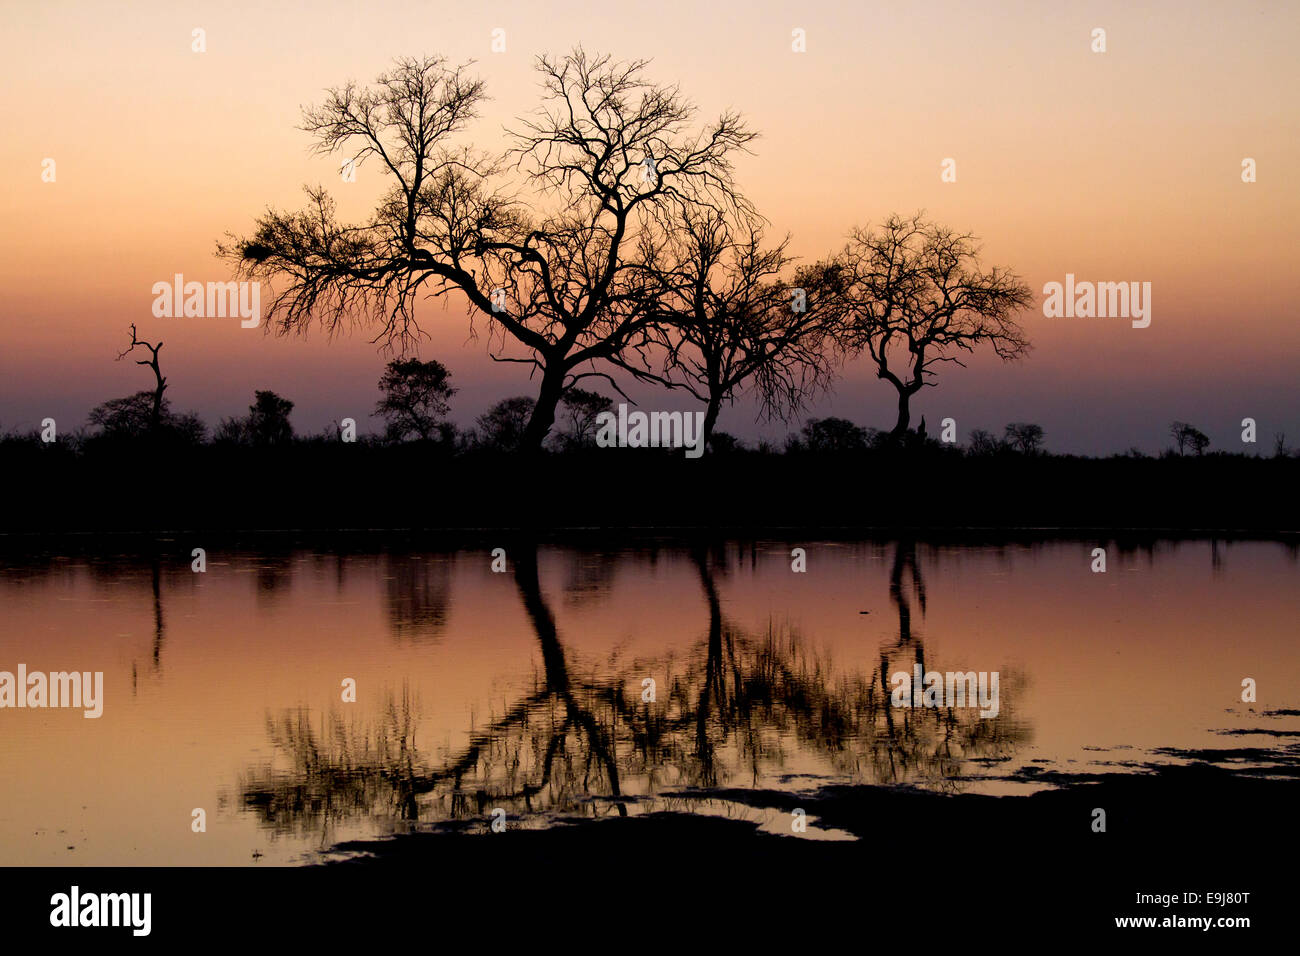 Trees reflected in still water at sunset - Stock Image